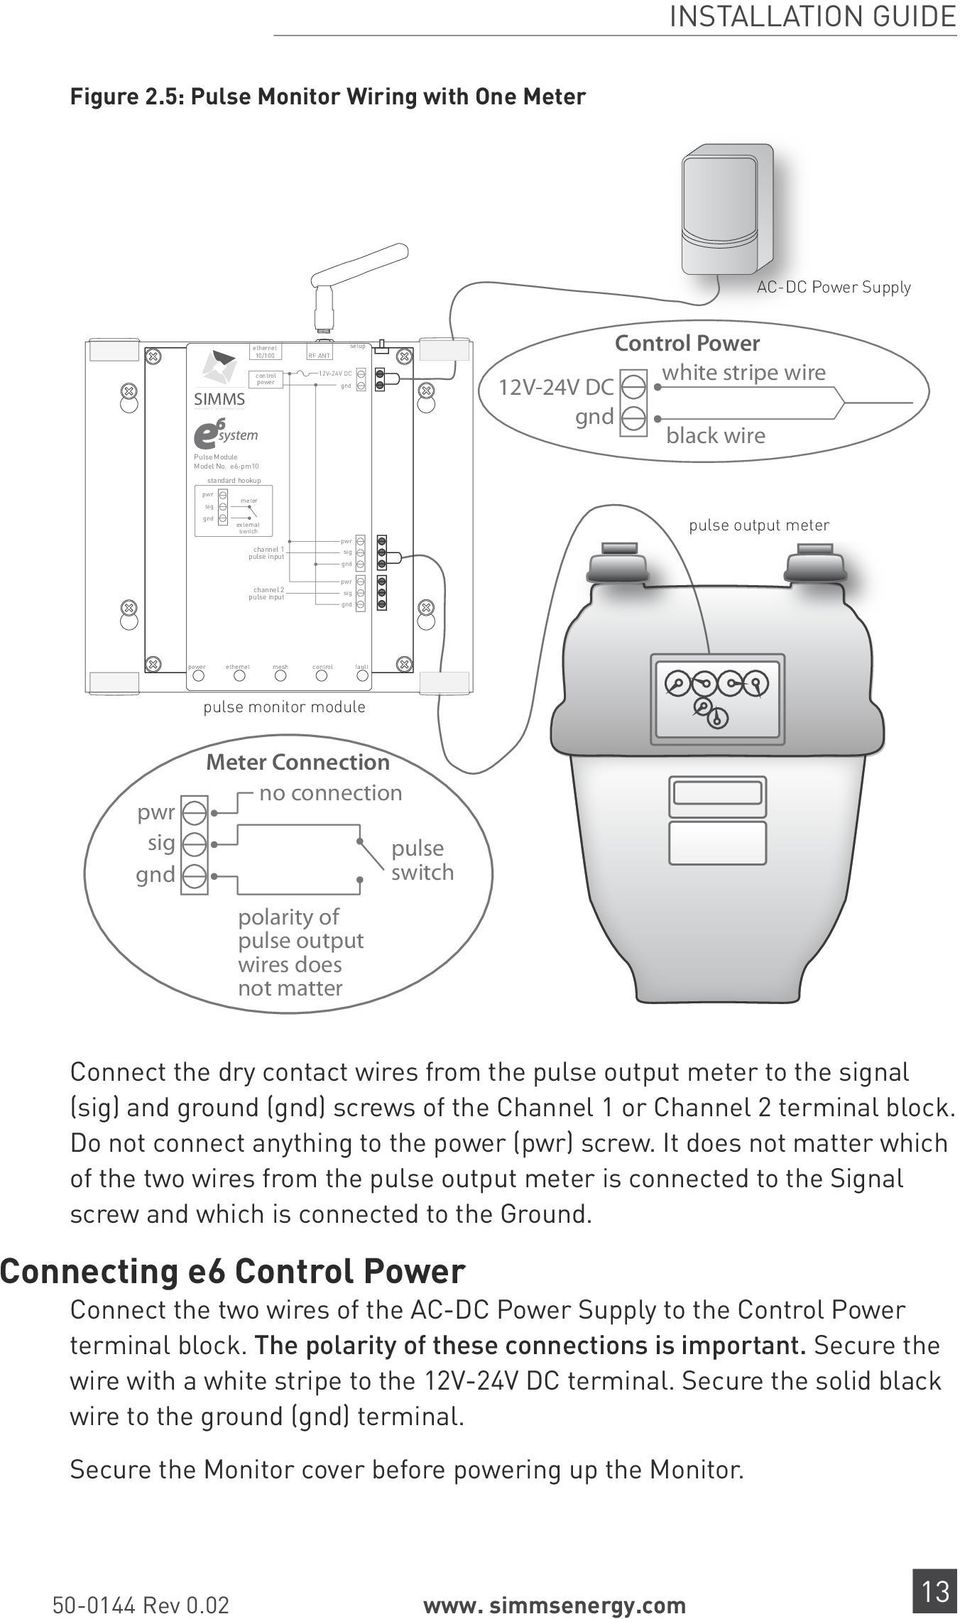 channel 2 pulse input power ethernet mesh control fault pulse monitor  module Meter Connection no connection